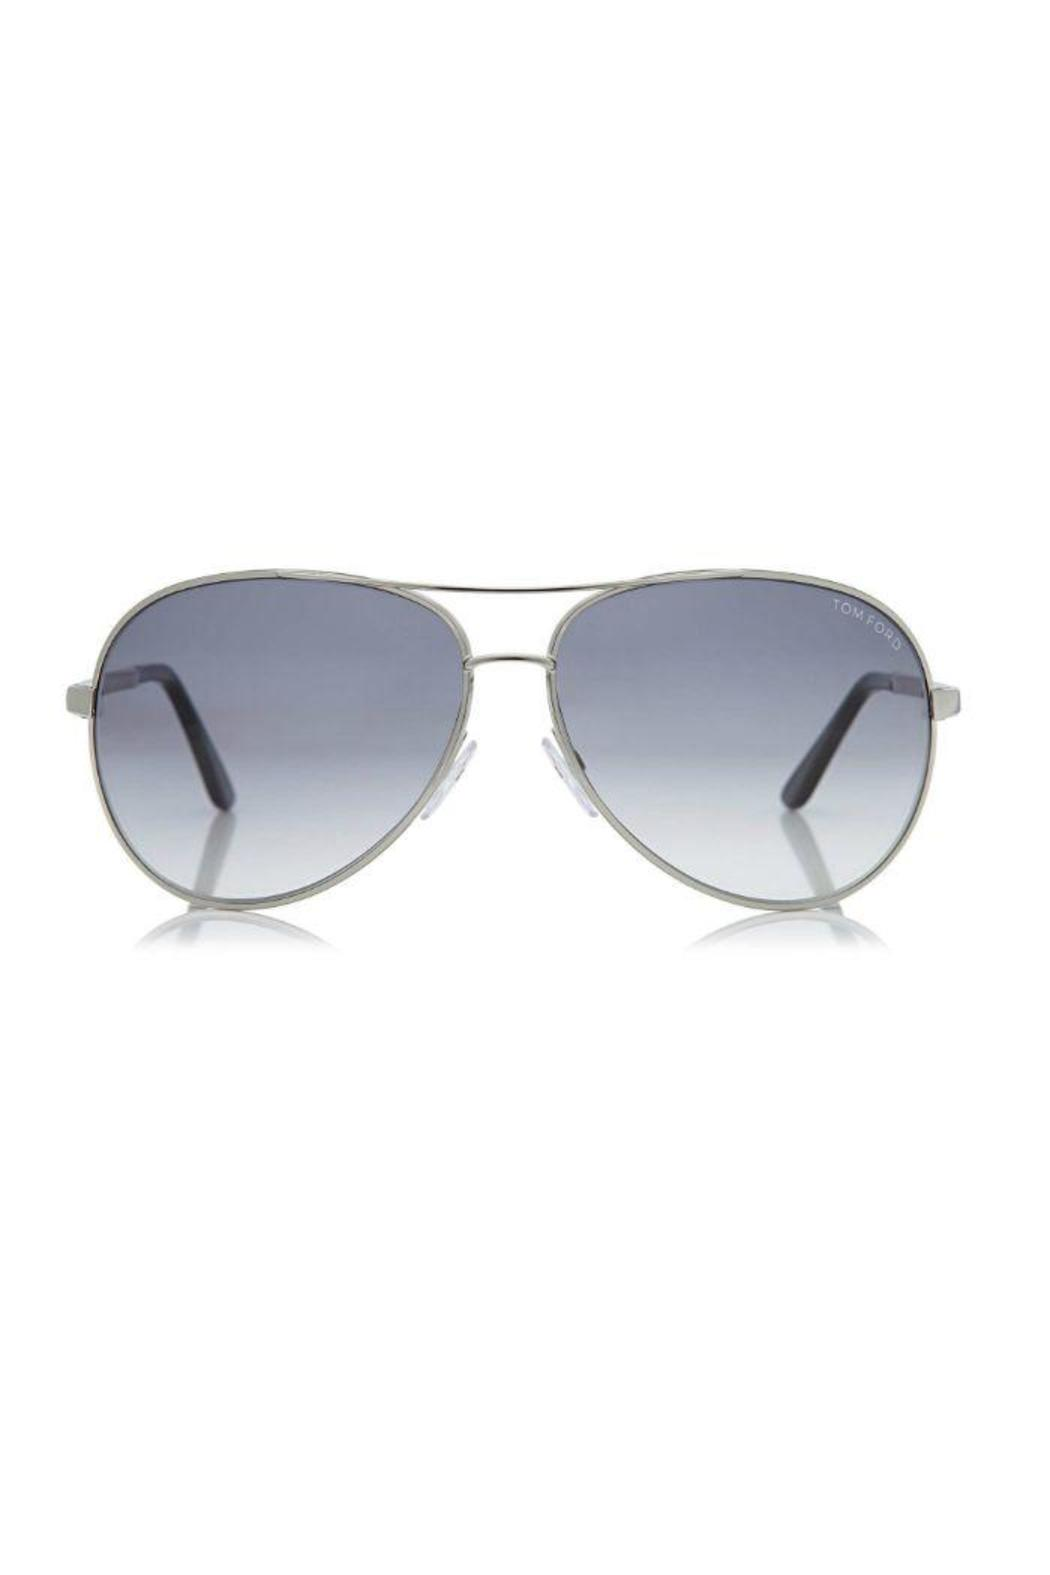 aebcec75d694 Tom Ford Charles Round-Aviator Sunglasses from Ohio by Peek of Chic ...